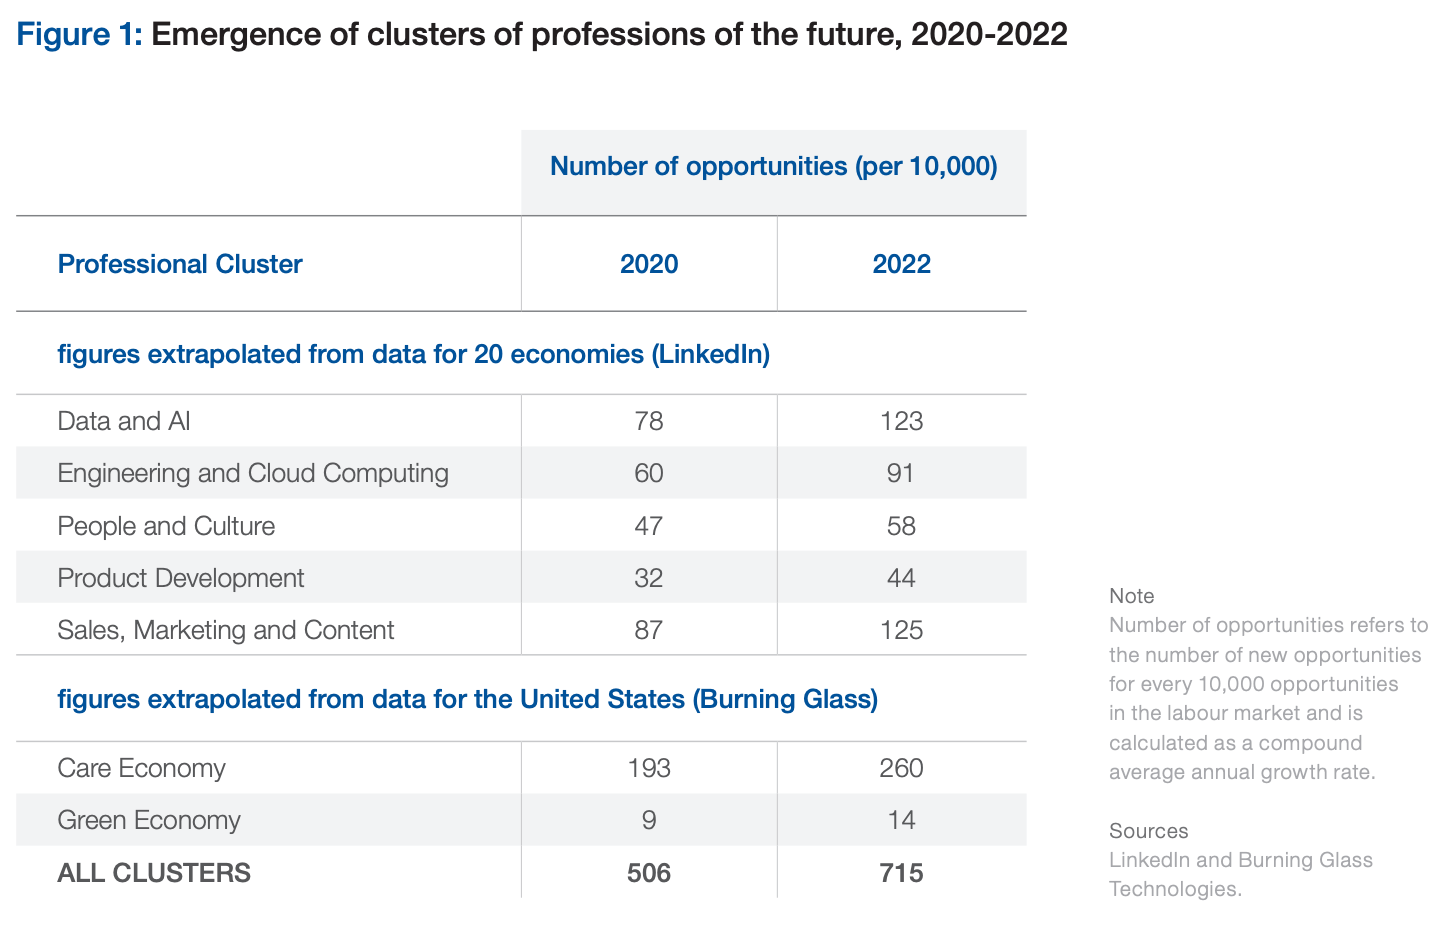 table showing stats on the emergence of clusters of professions of the future from 2020 to 2022